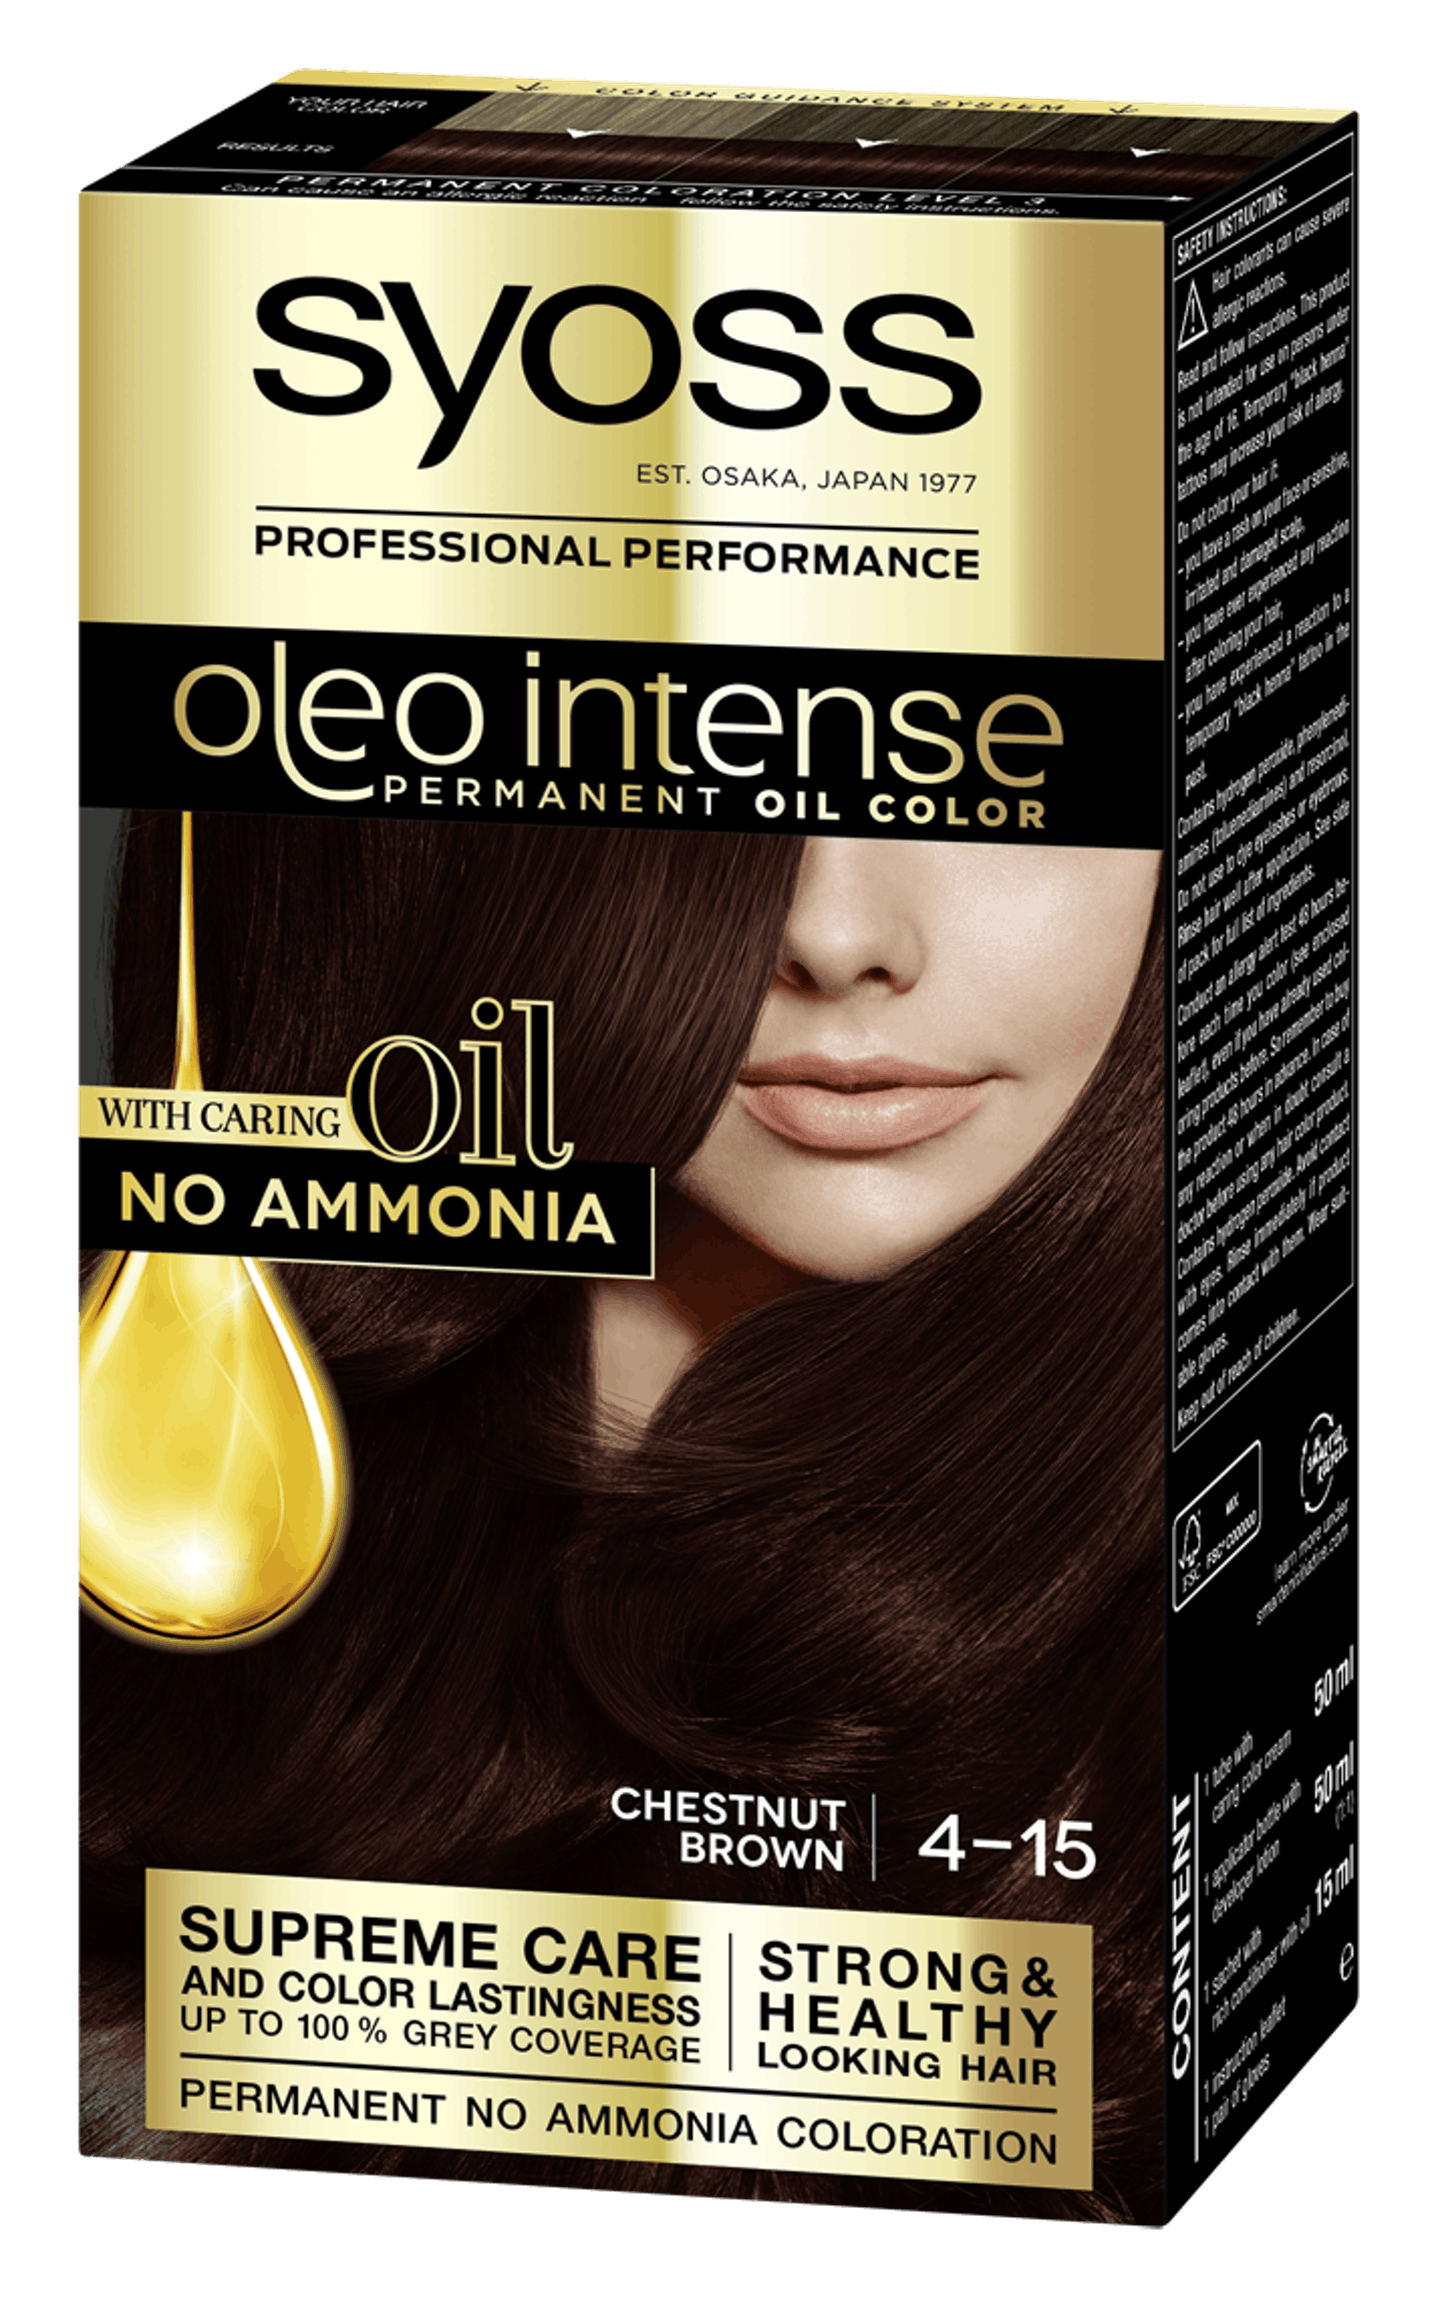 Syoss Oleo Intense Permanent Oil Color 4-15 Chestnut Brown